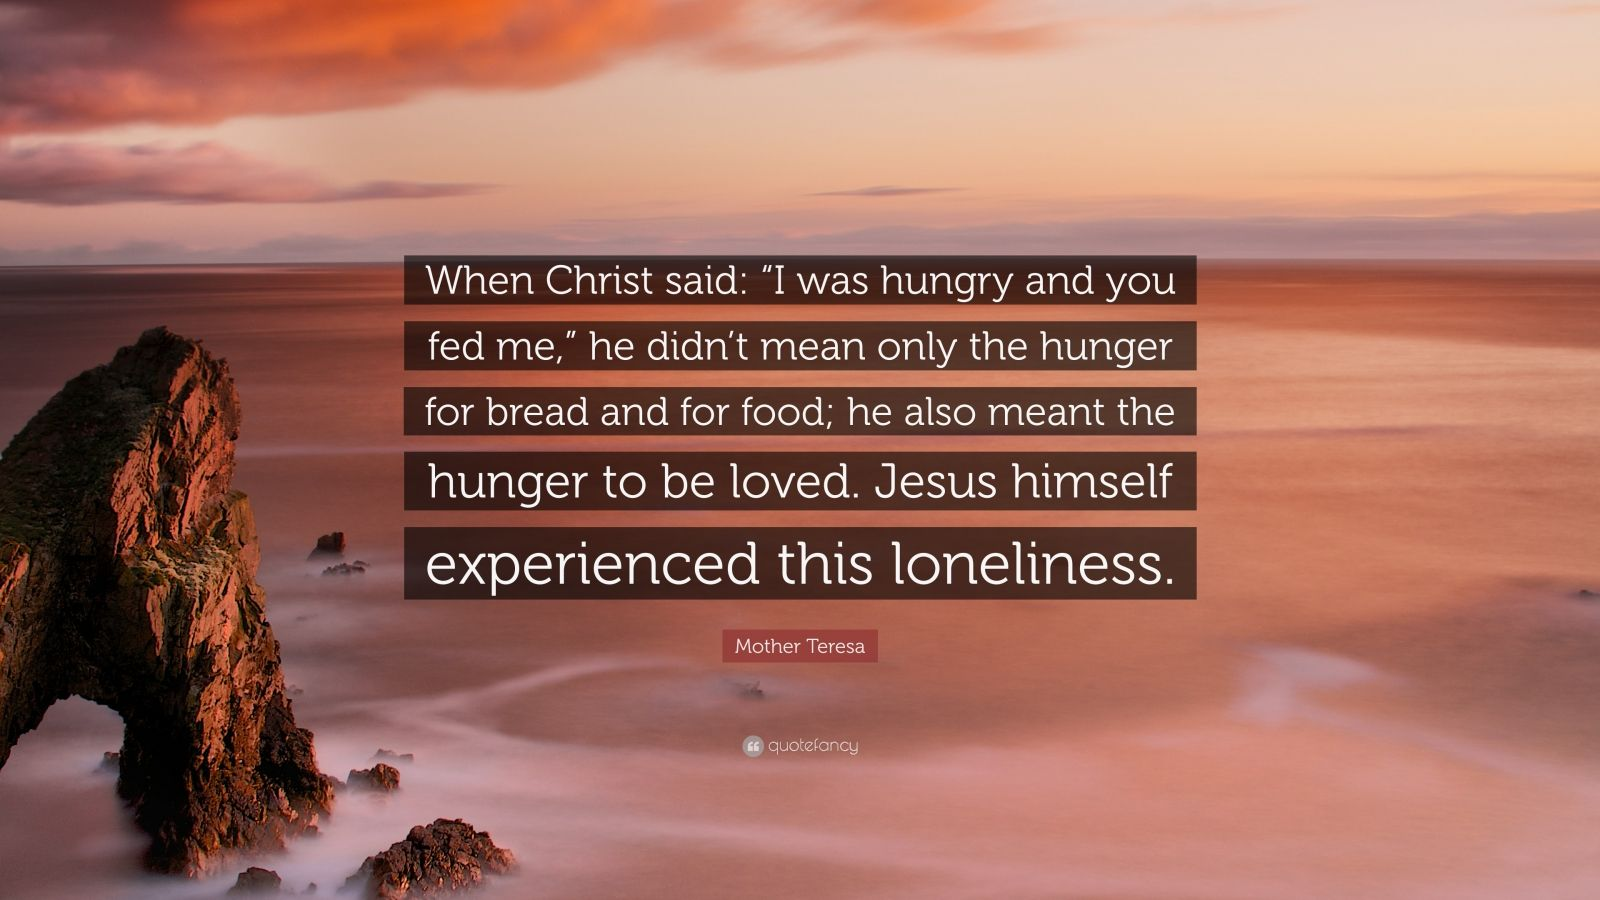 """Mother Teresa Quote: """"When Christ said: """"I was hungry and you fed me,"""" he didn't mean only the hunger for bread and for food; he also meant the hunger to be loved. Jesus himself experienced this loneliness."""""""